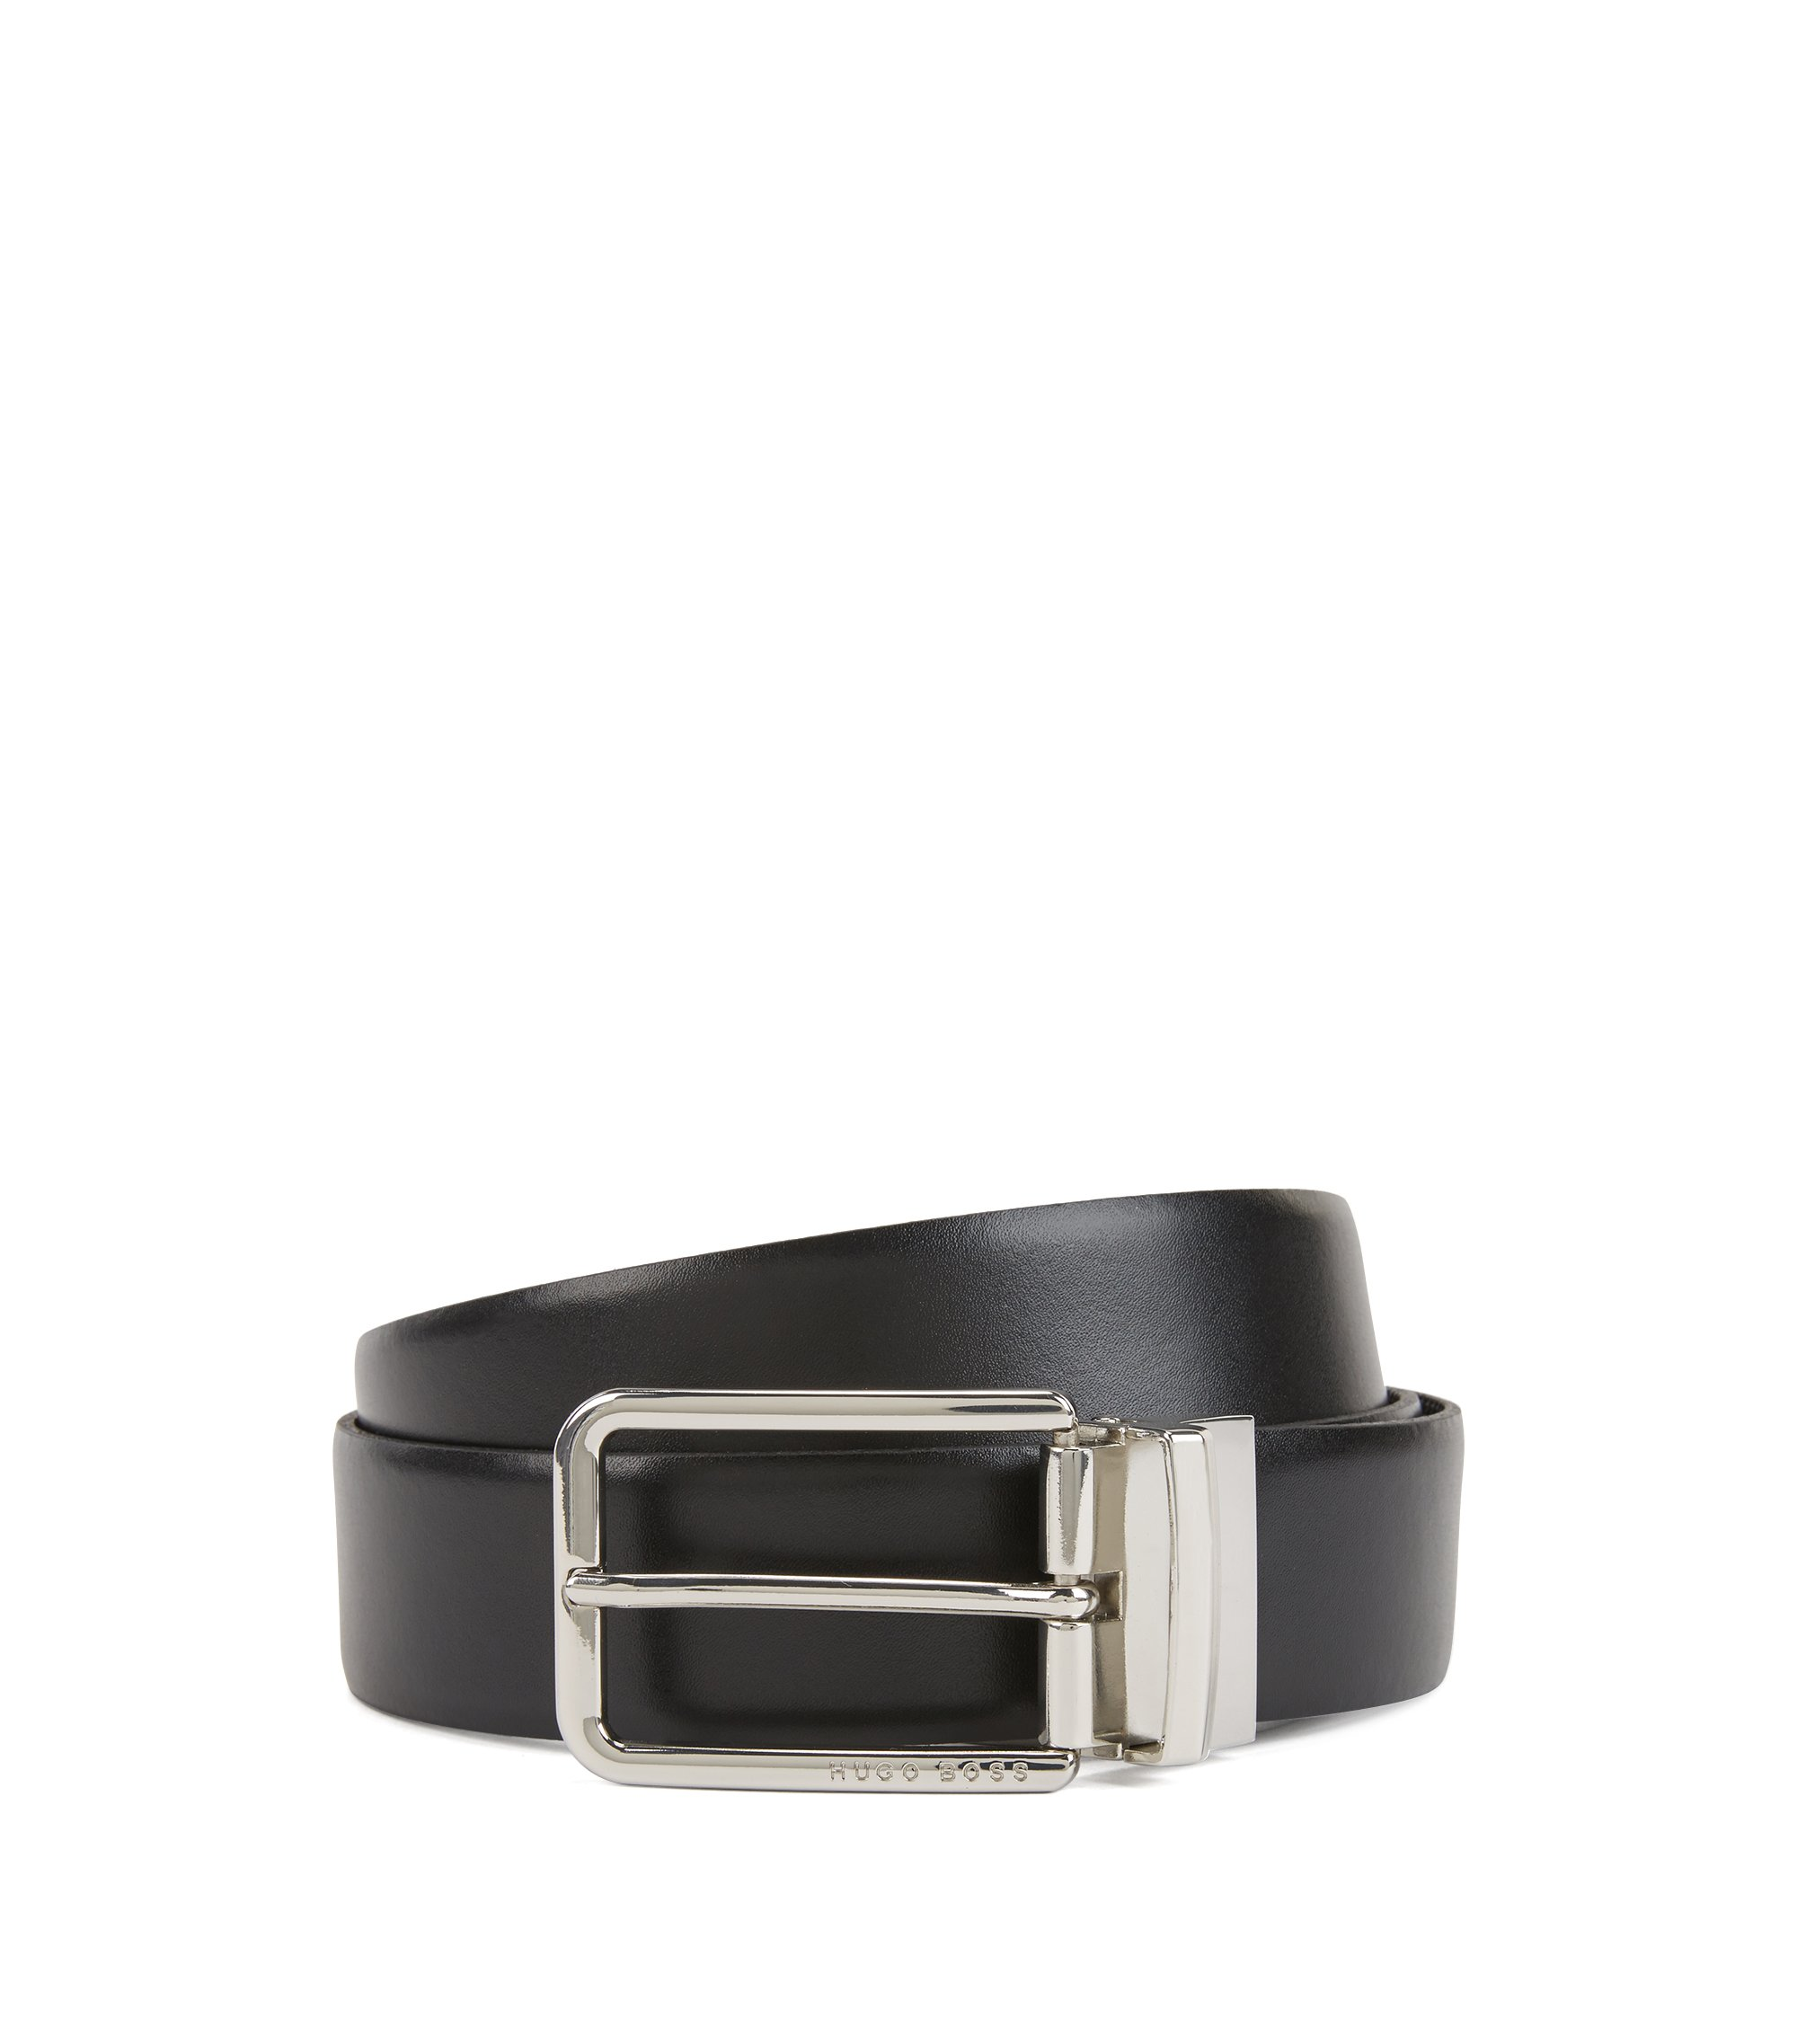 Reversible leather belt in two colors with silver buckle, Black